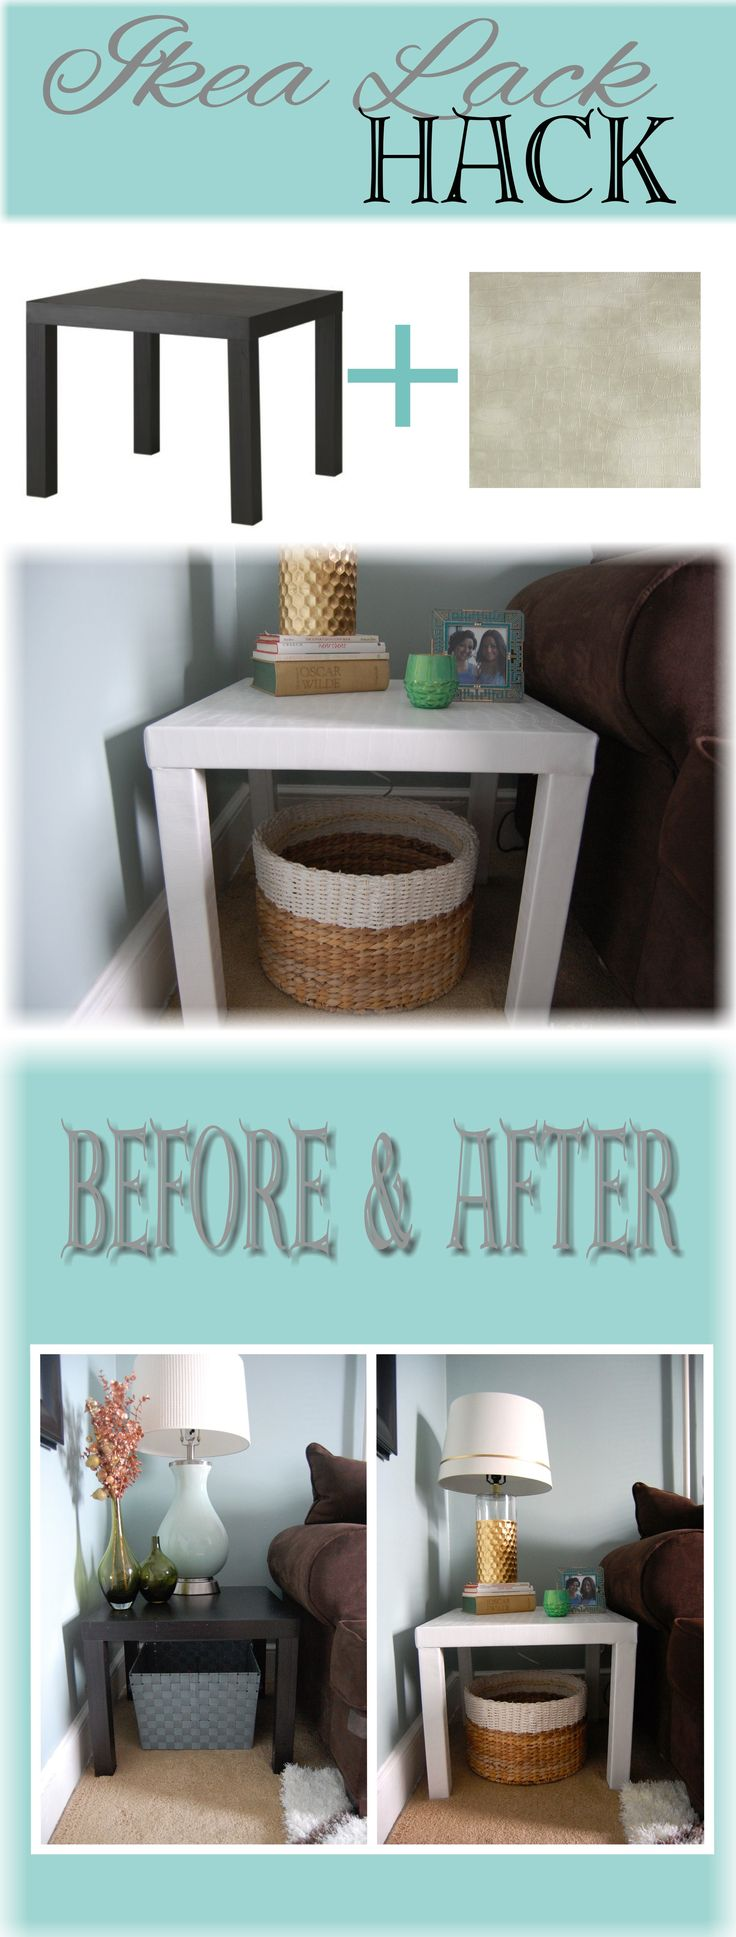 Ikea Lack Side Table Hack http://made2style.com/2014/01/08/ikea-lack-side-table-hack/